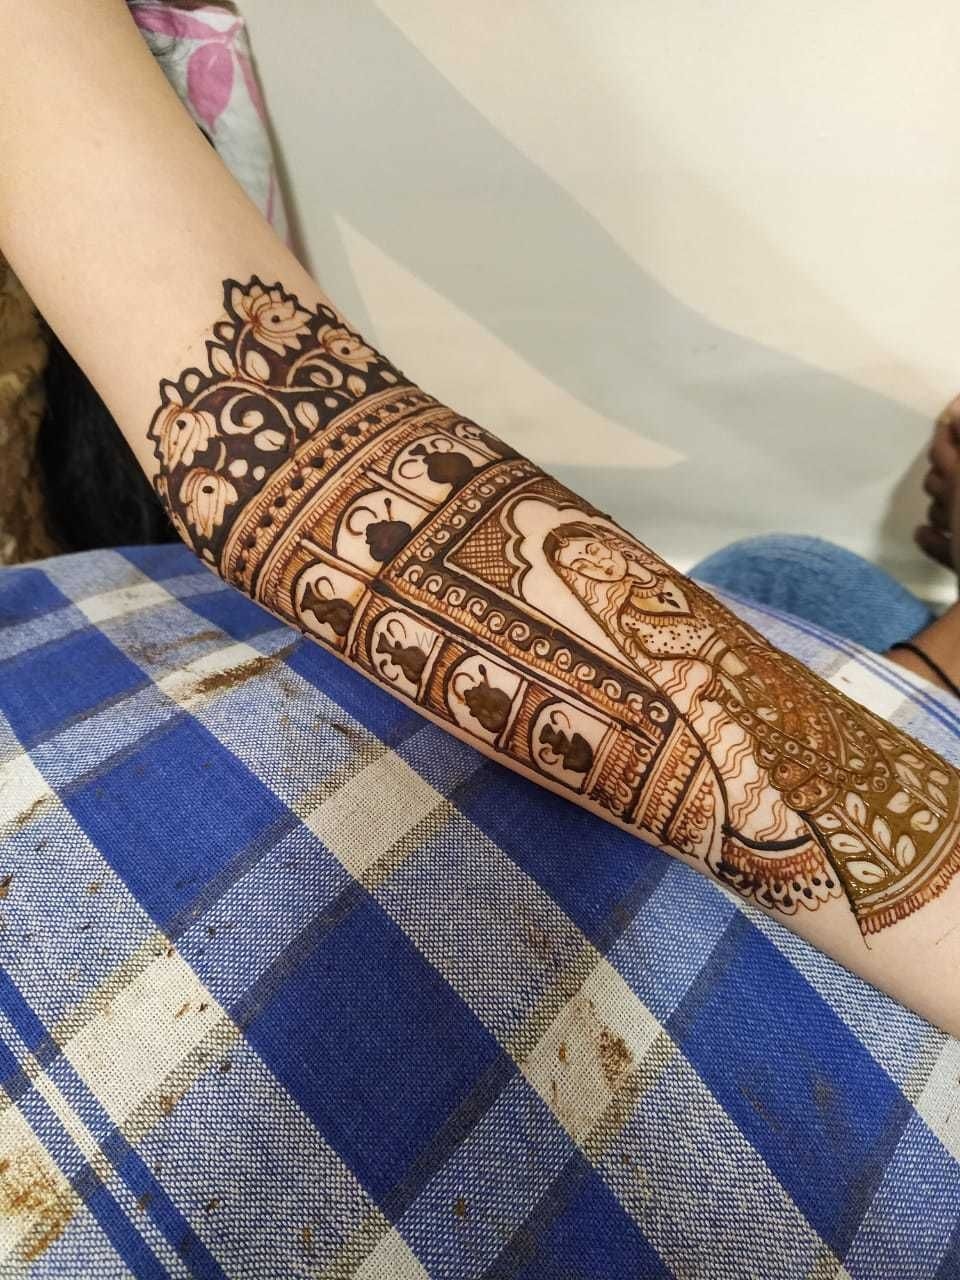 Photo By Lata Mehandi - Mehendi Artist